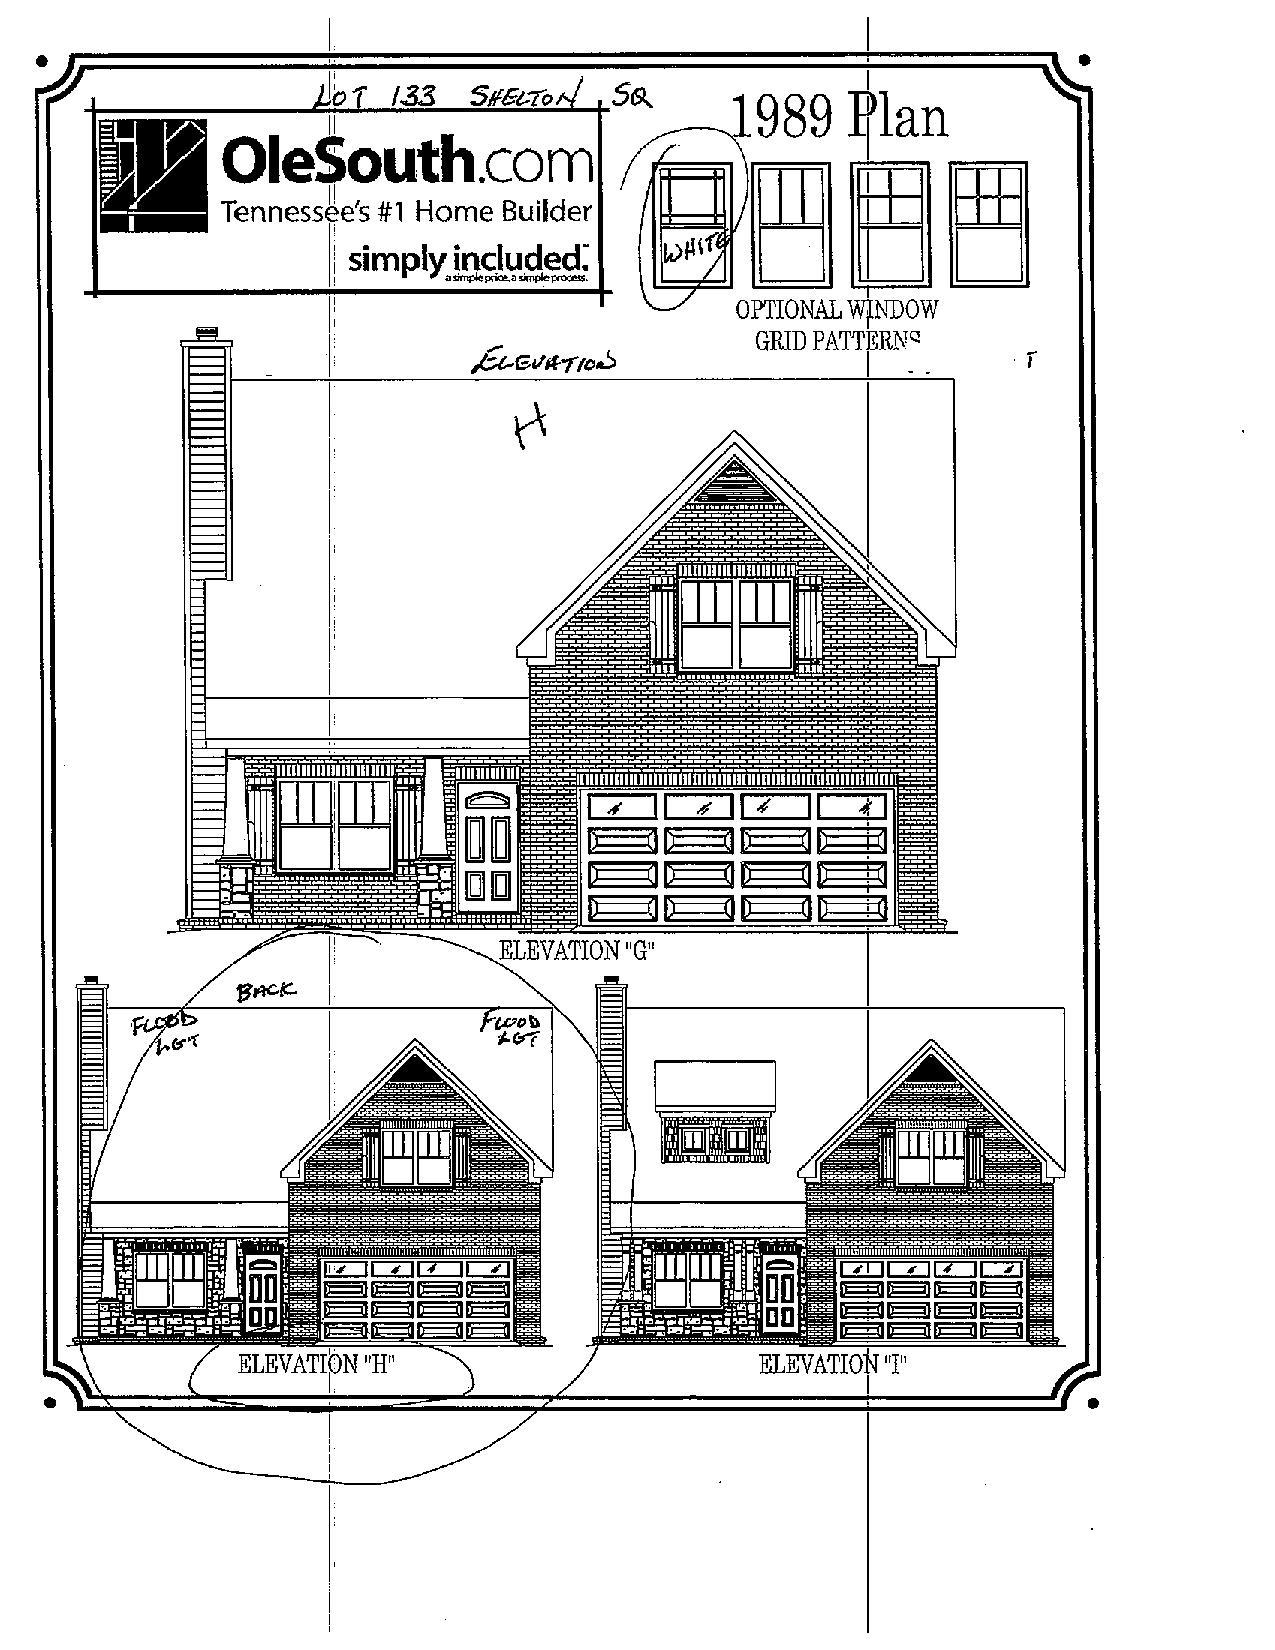 5237 Pointer Place  lot 133, Murfreesboro, Tennessee